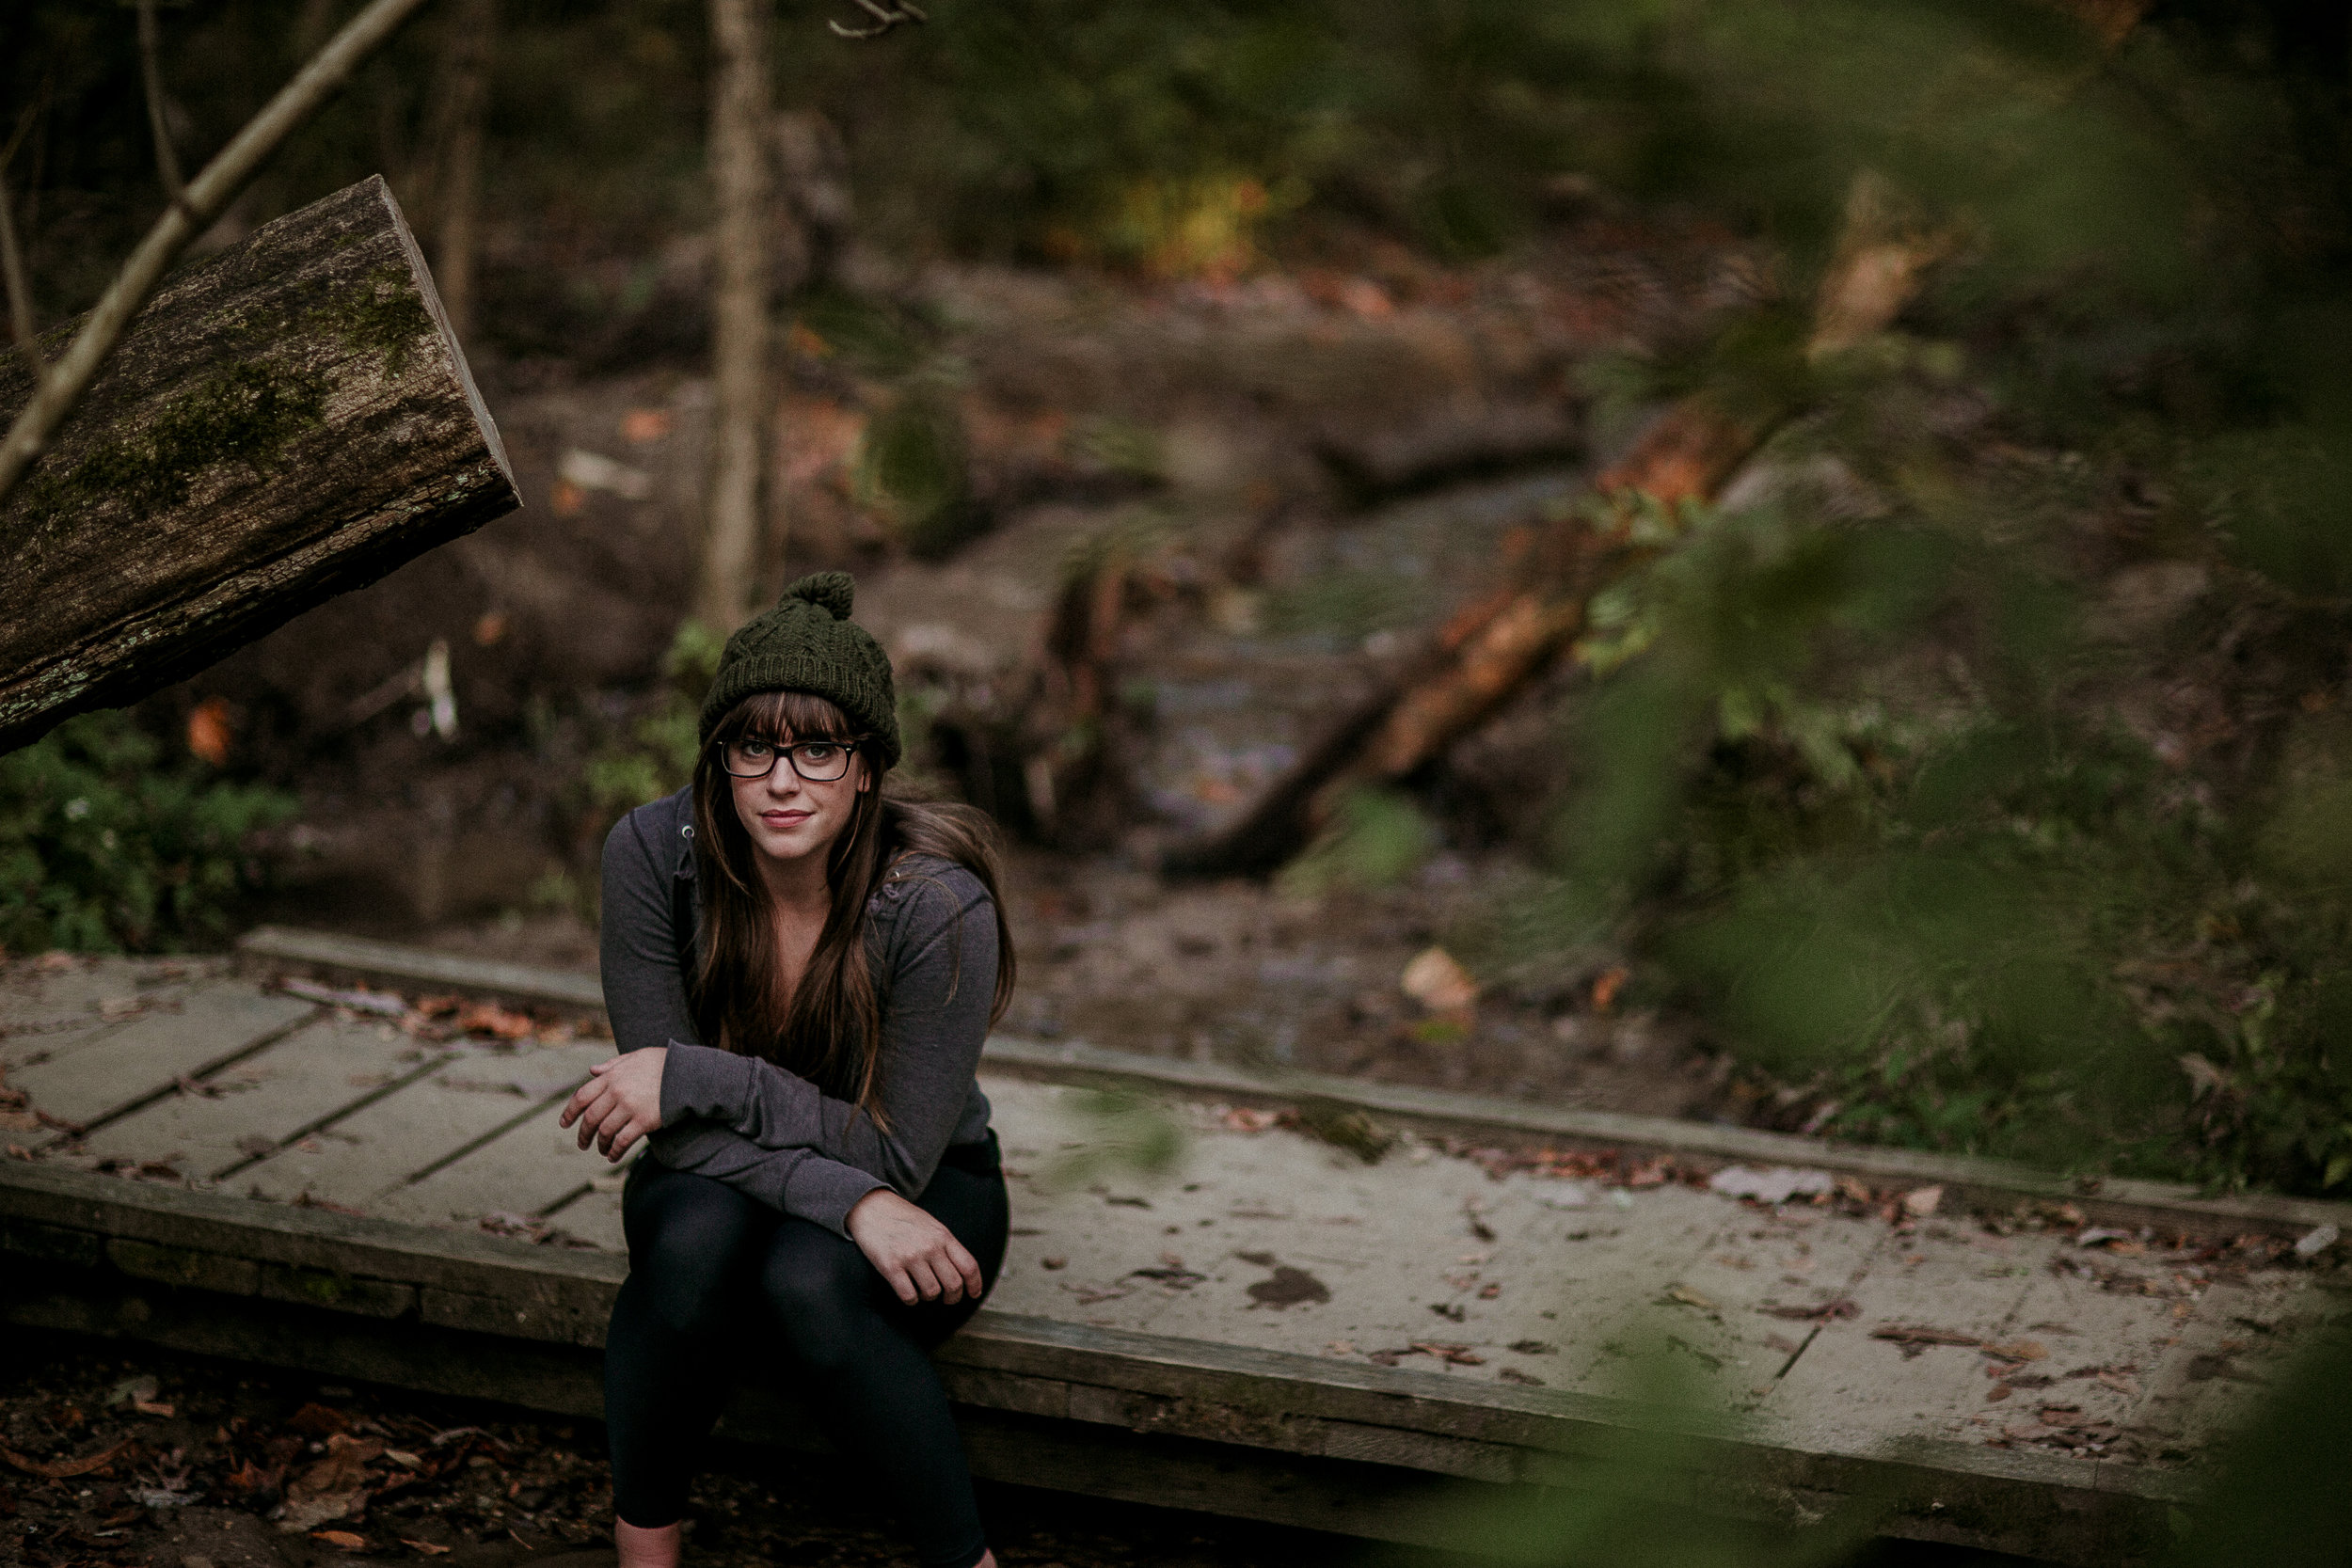 We had a bonding photo hike at Mound State Park for the  Ball State Daily News  and I got some cute pics of my editor, Kaiti.